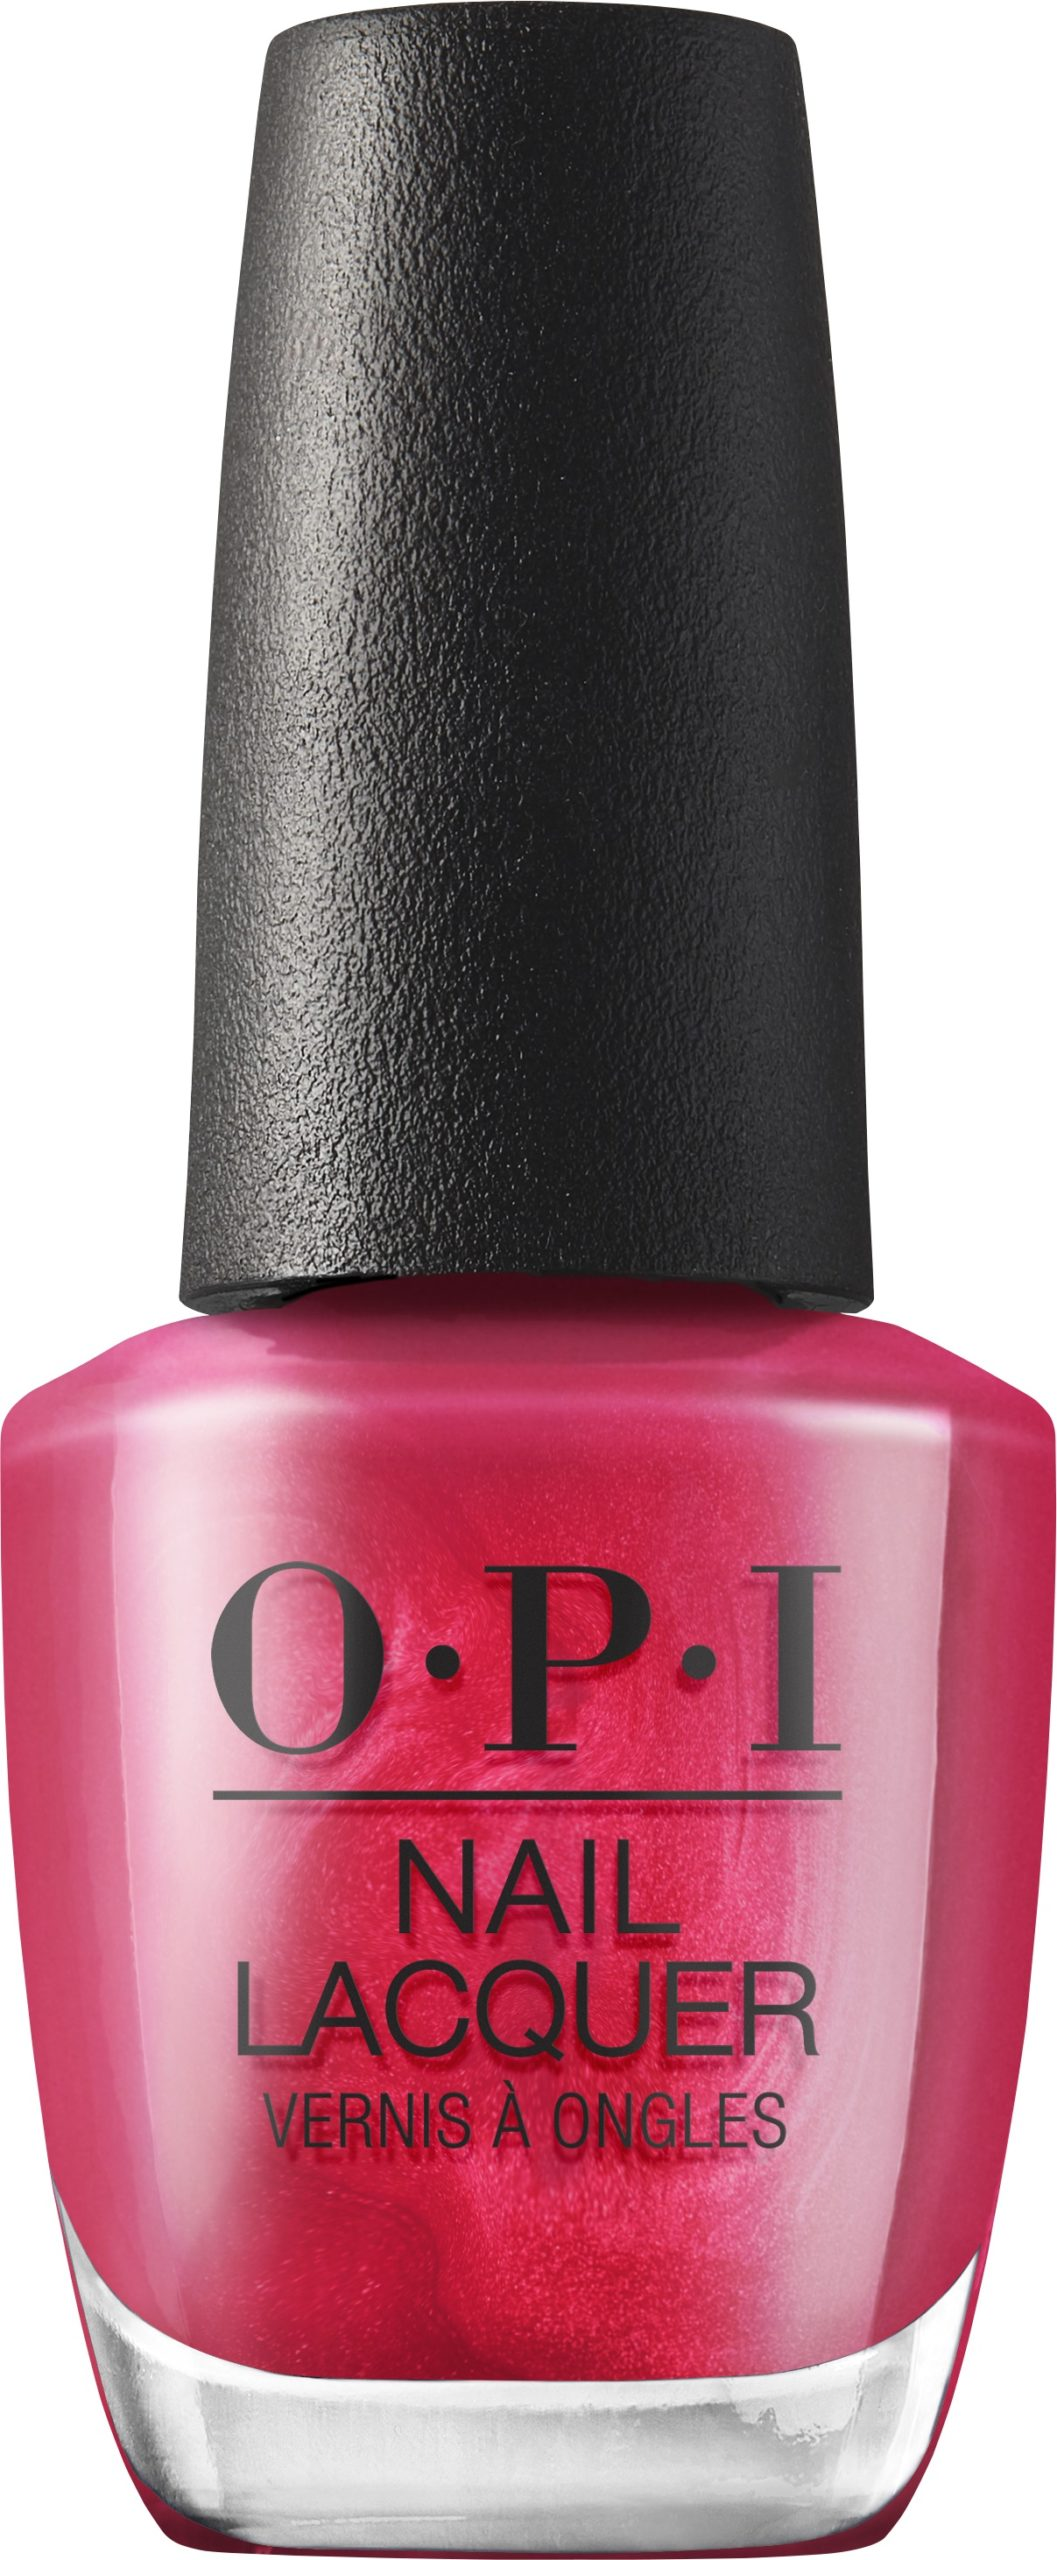 My Celebrity Life – OPI 15 Minutes of Flame Nail Lacquer